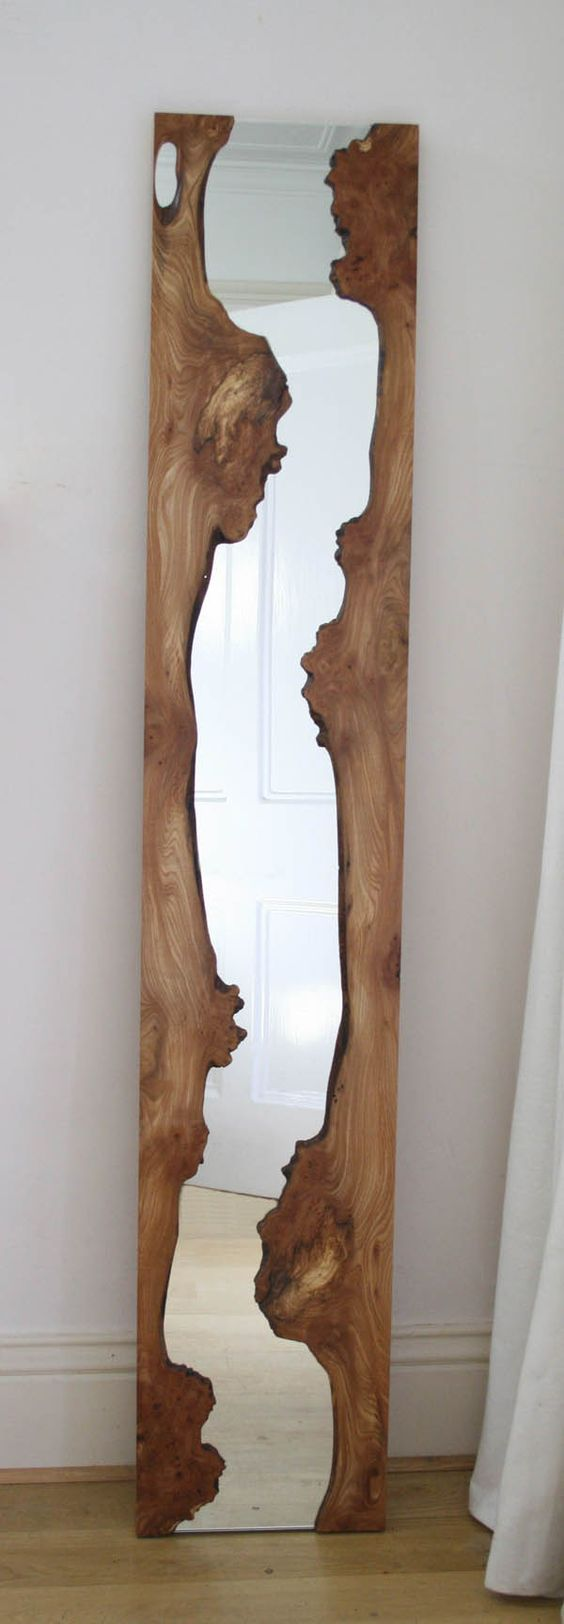 Awesome and very natural.: Wood Mirror, Cool Mirror, Wall Mirror, Mirror Wall, Drift Wood, River Mirror